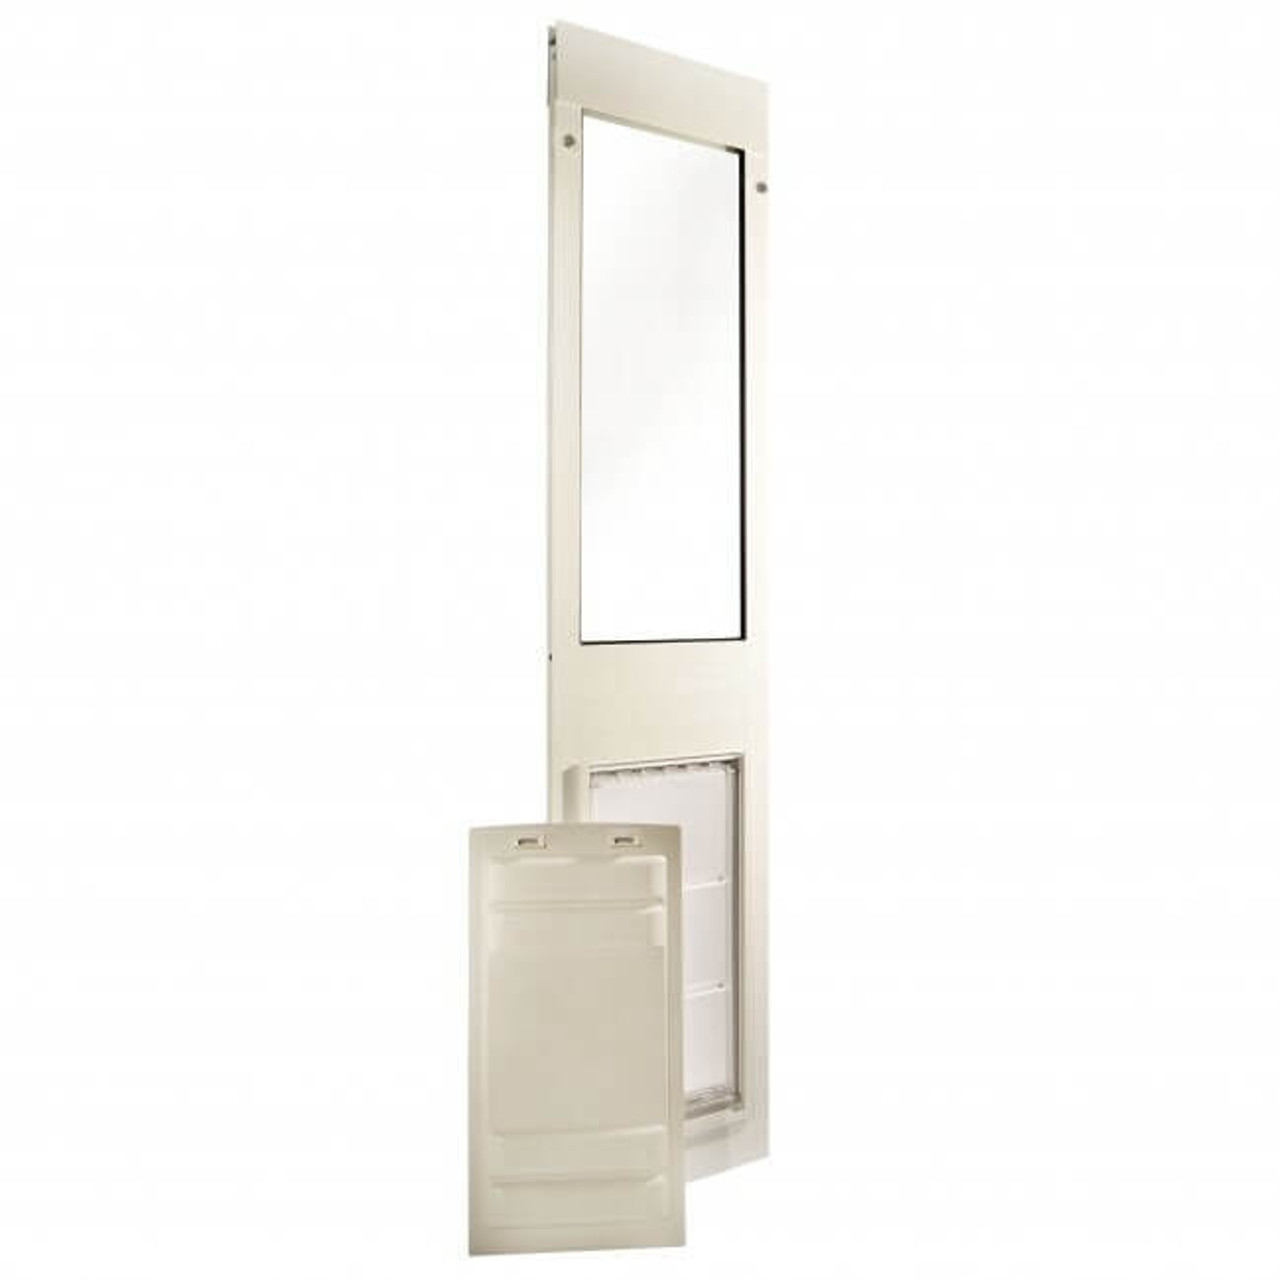 Thermo Panel 3e Endura Flap doggy doors are weather tight and install in minutes